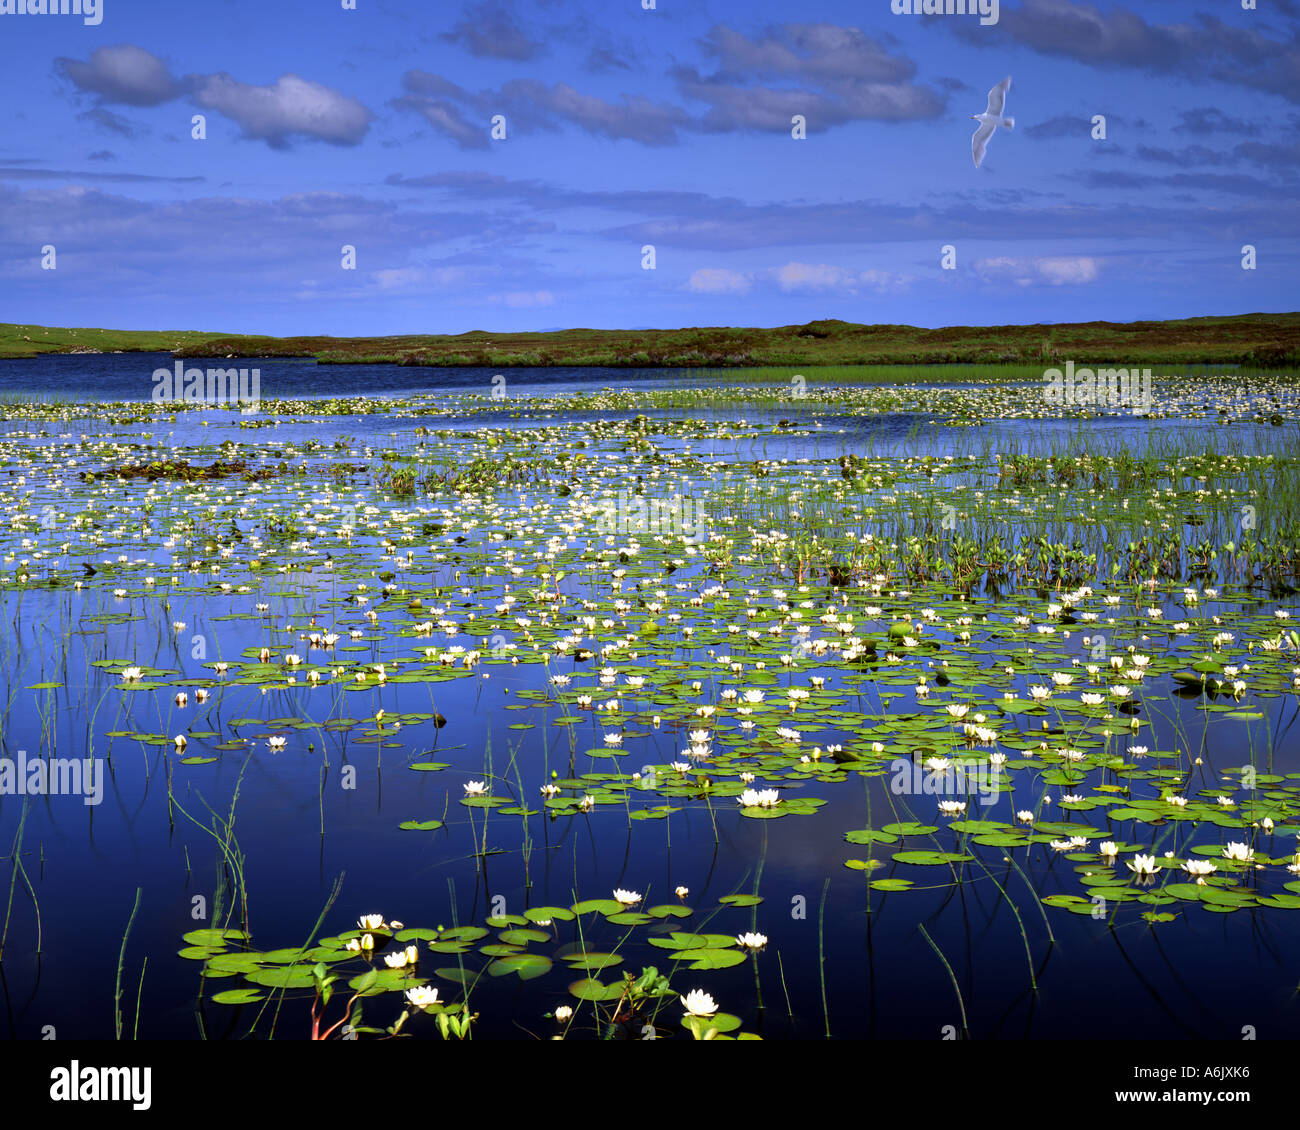 GB - SCOTLAND:  Loch Olavat on Benbecula in the Outer Hebrides - Stock Image